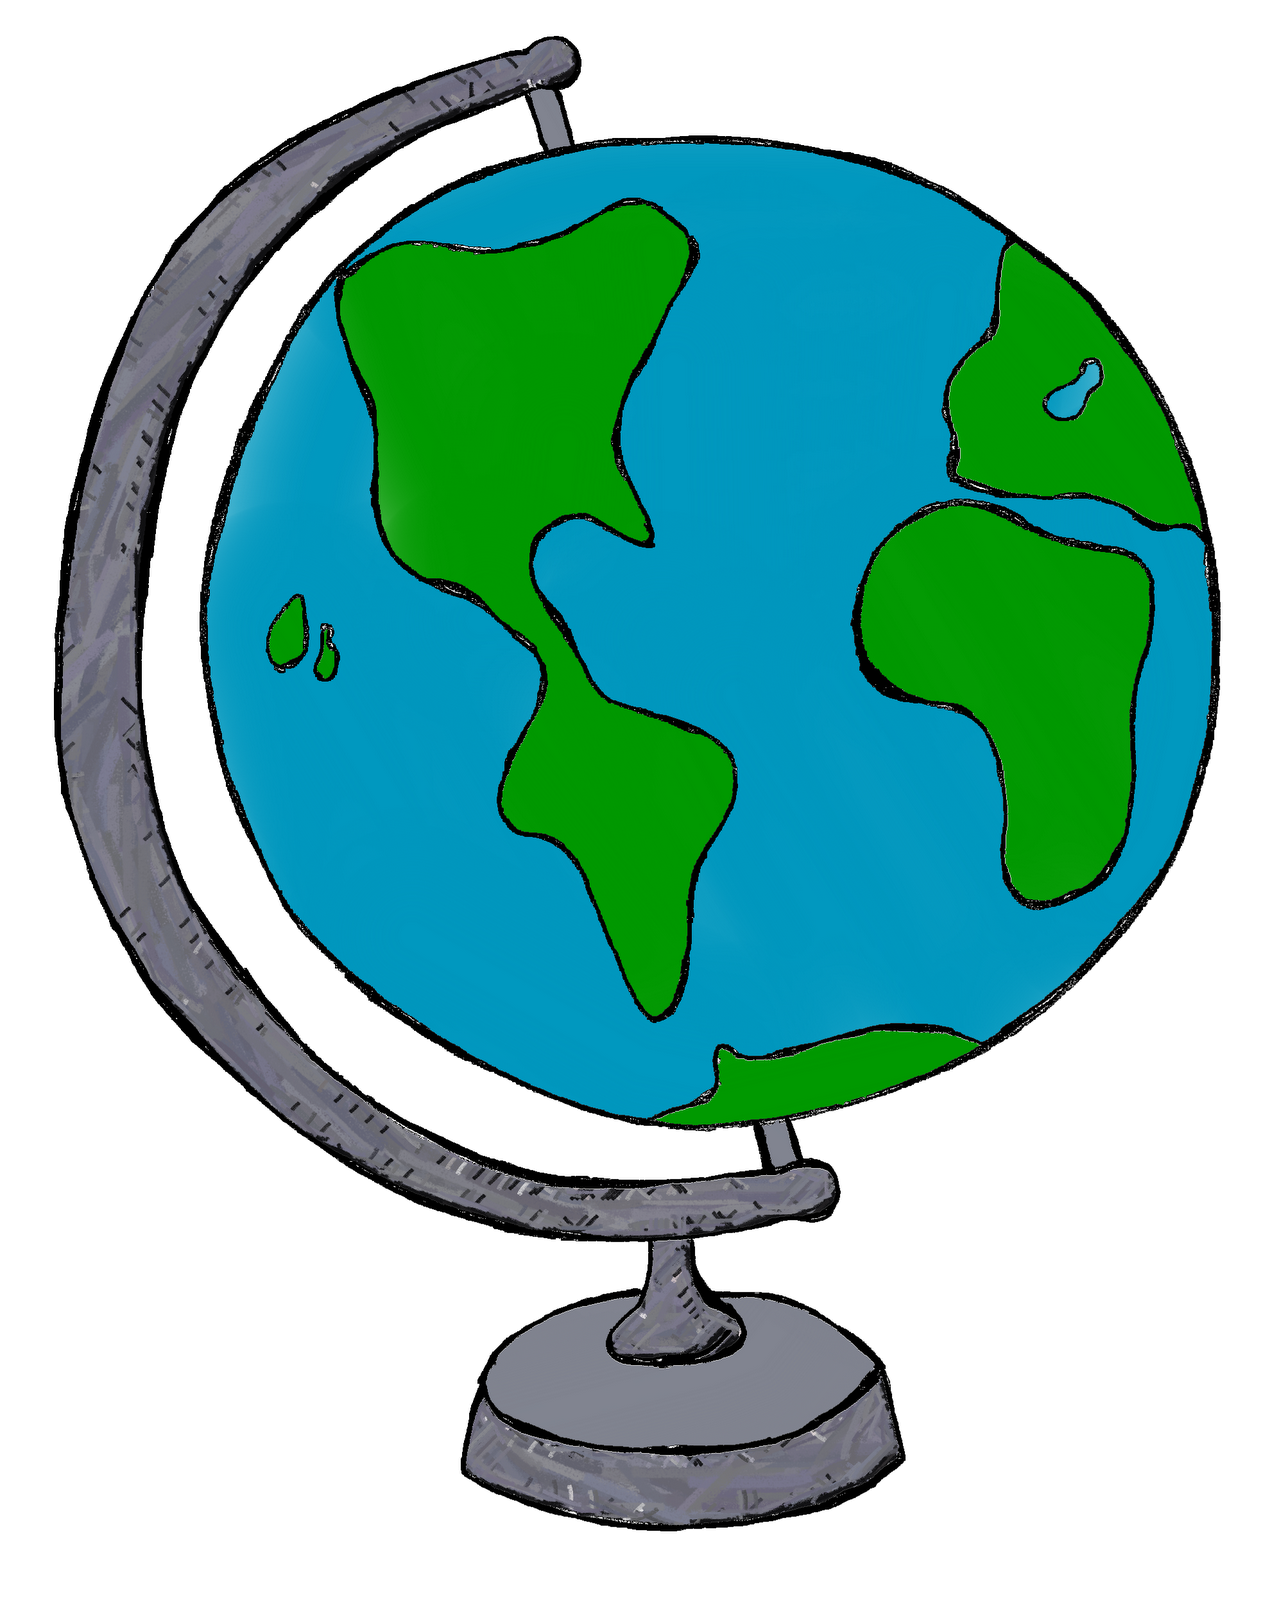 Globe clipart #9, Download drawings